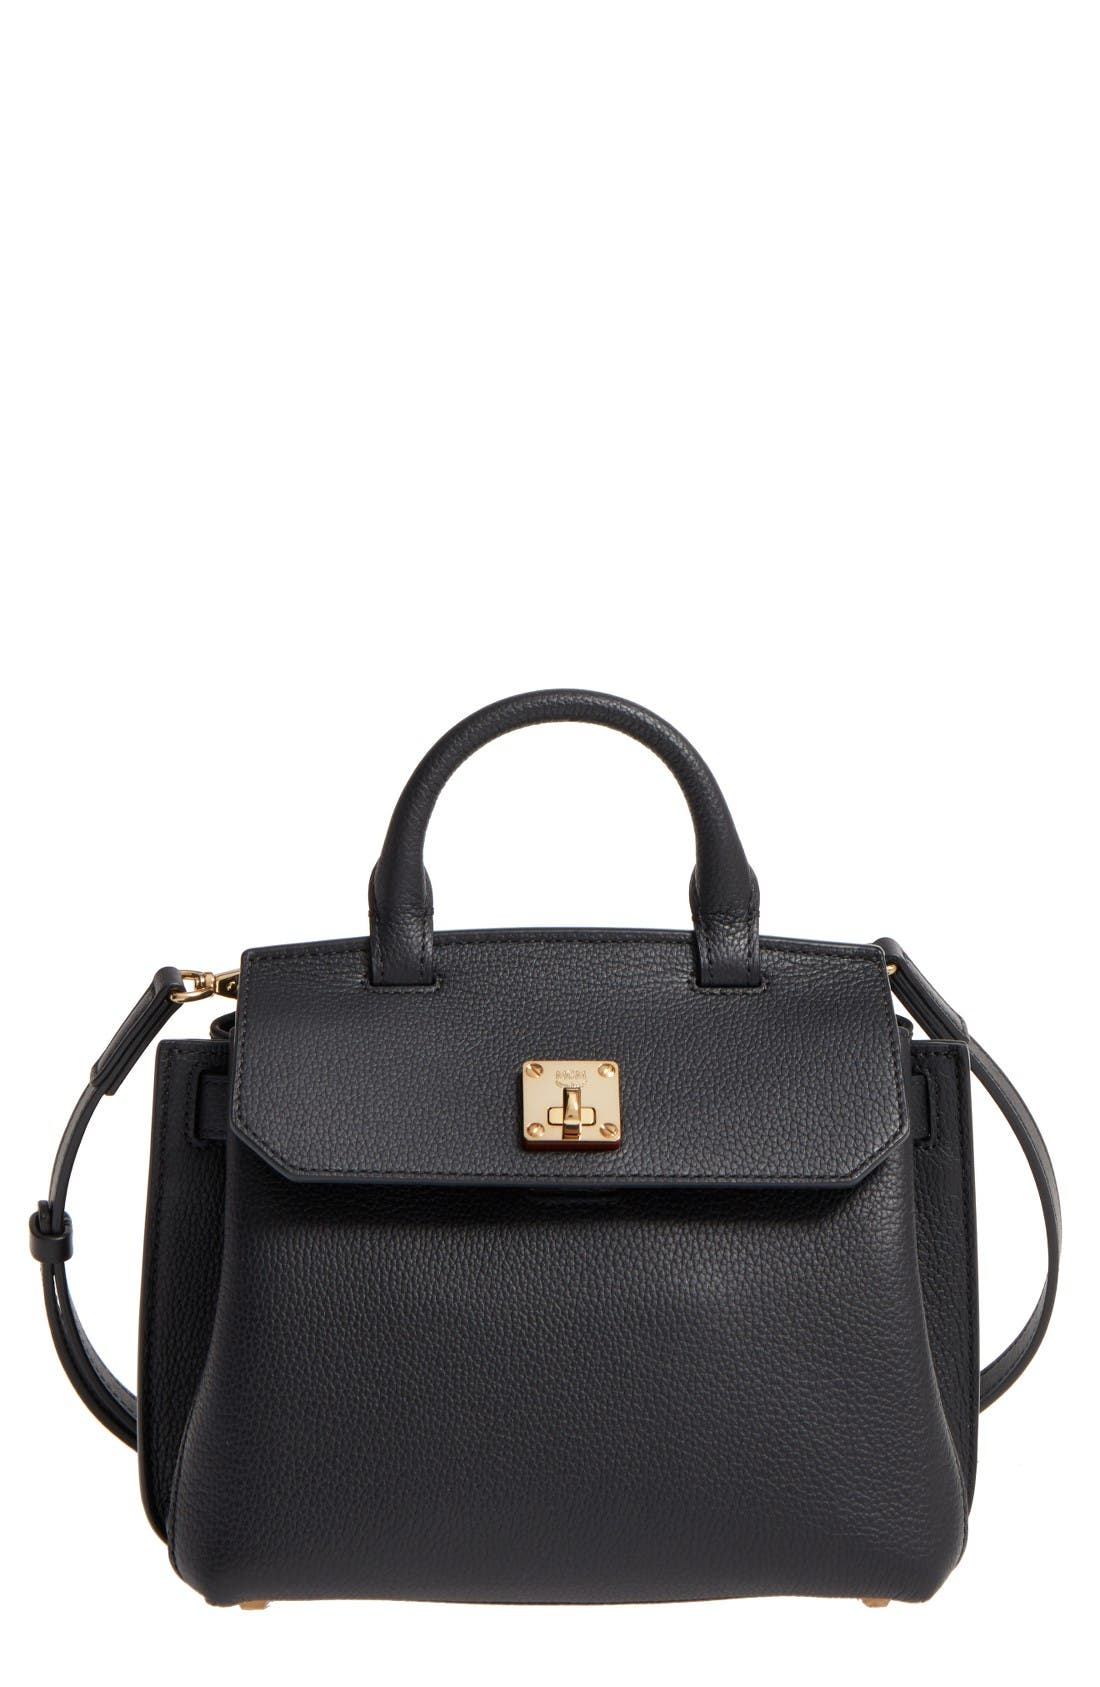 Alternate Image 1 Selected - MCM Milla Leather Crossbody Bag